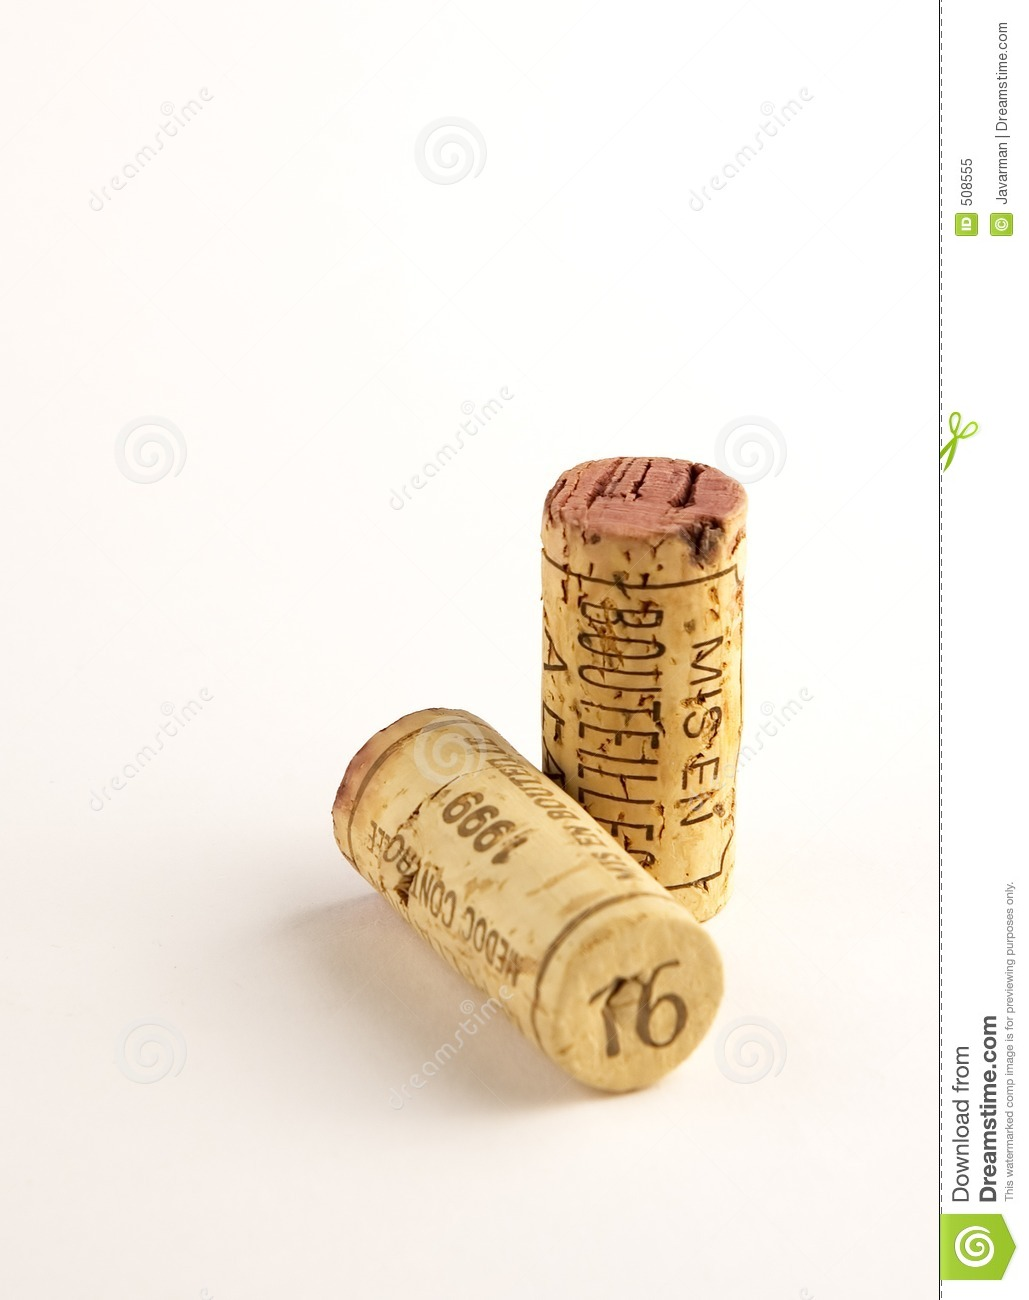 Two corks